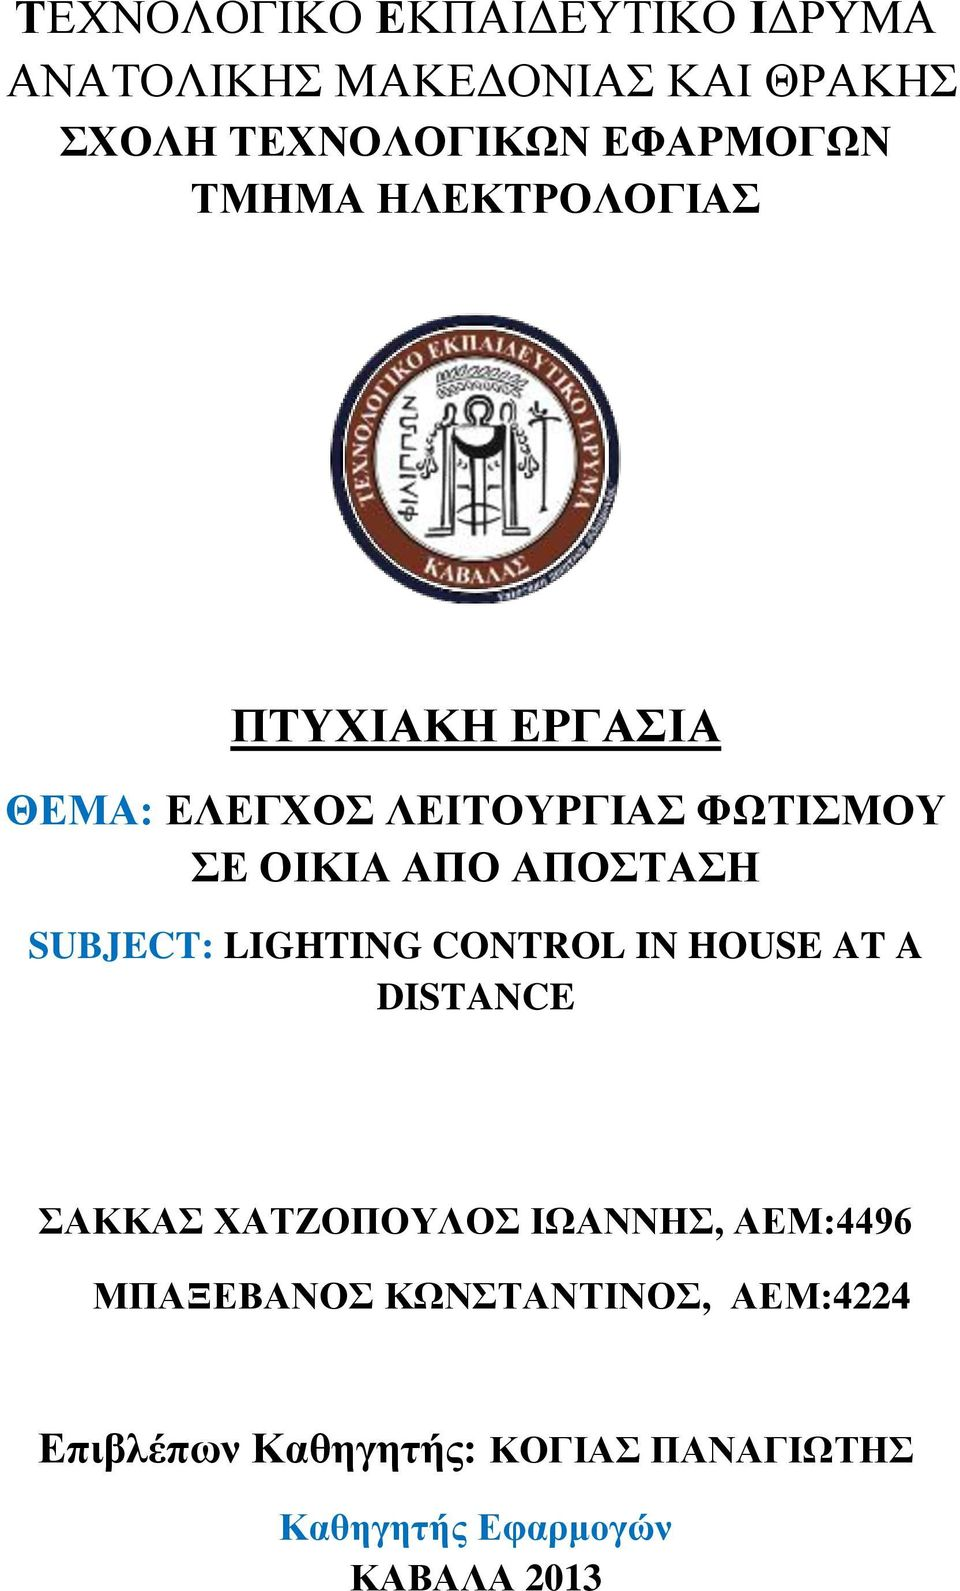 SUBJECT: LIGHTING CONTROL IN HOUSE AT A DISTANCE ΣΑΚΚΑΣ ΧΑΤΖΟΠΟΥΛΟΣ ΙΩΑΝΝΗΣ, ΑΕΜ:4496